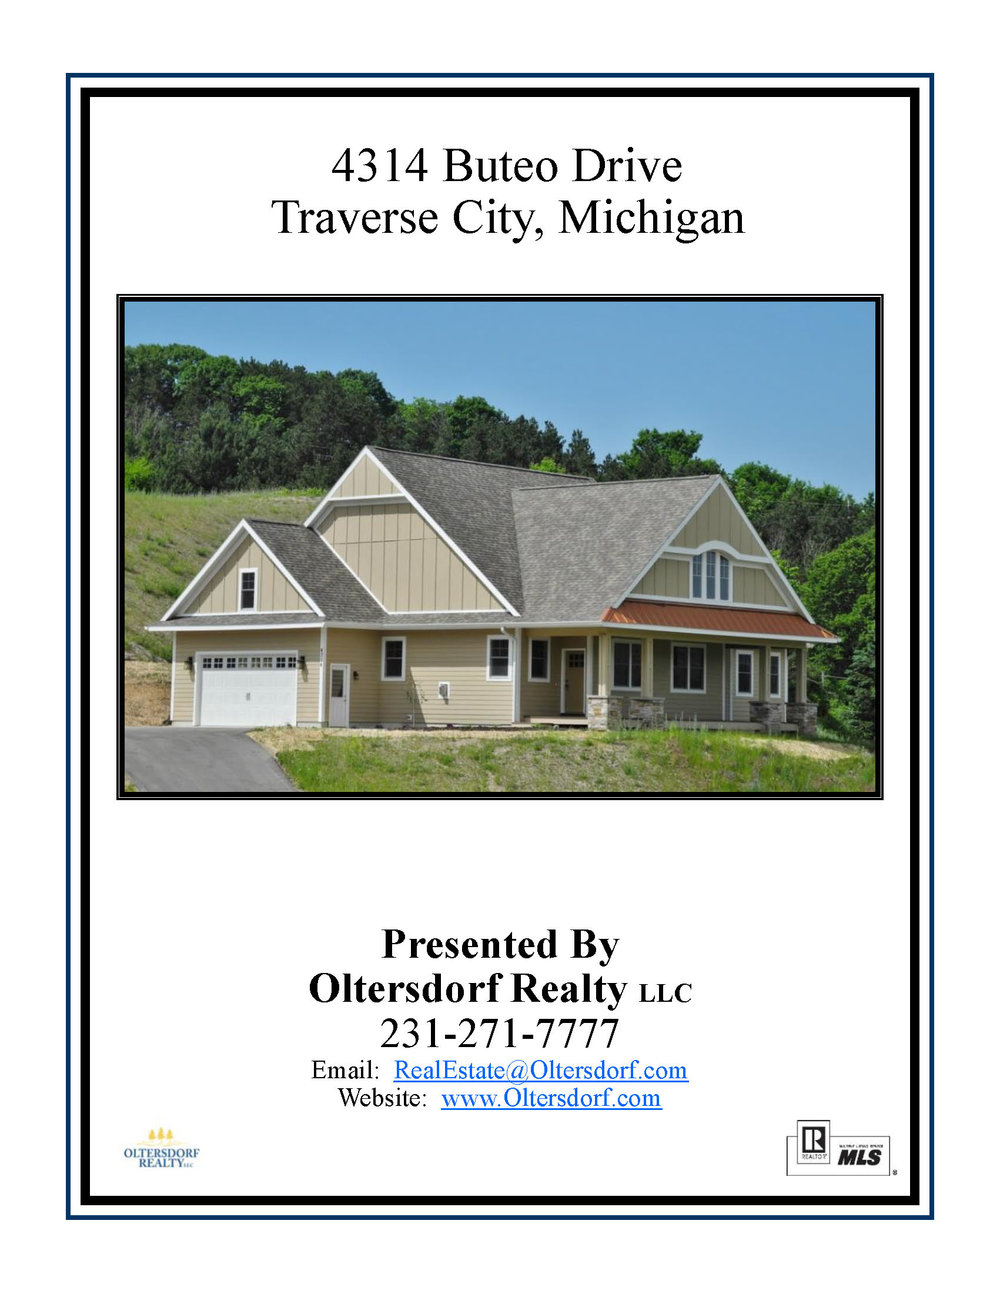 4314 Buteo Drive, Traverse City, MI – Newly Constructed Ranch Home Close To Downtown for sale by Oltersdorf Realty LLC - Marketing Packet (1).jpg